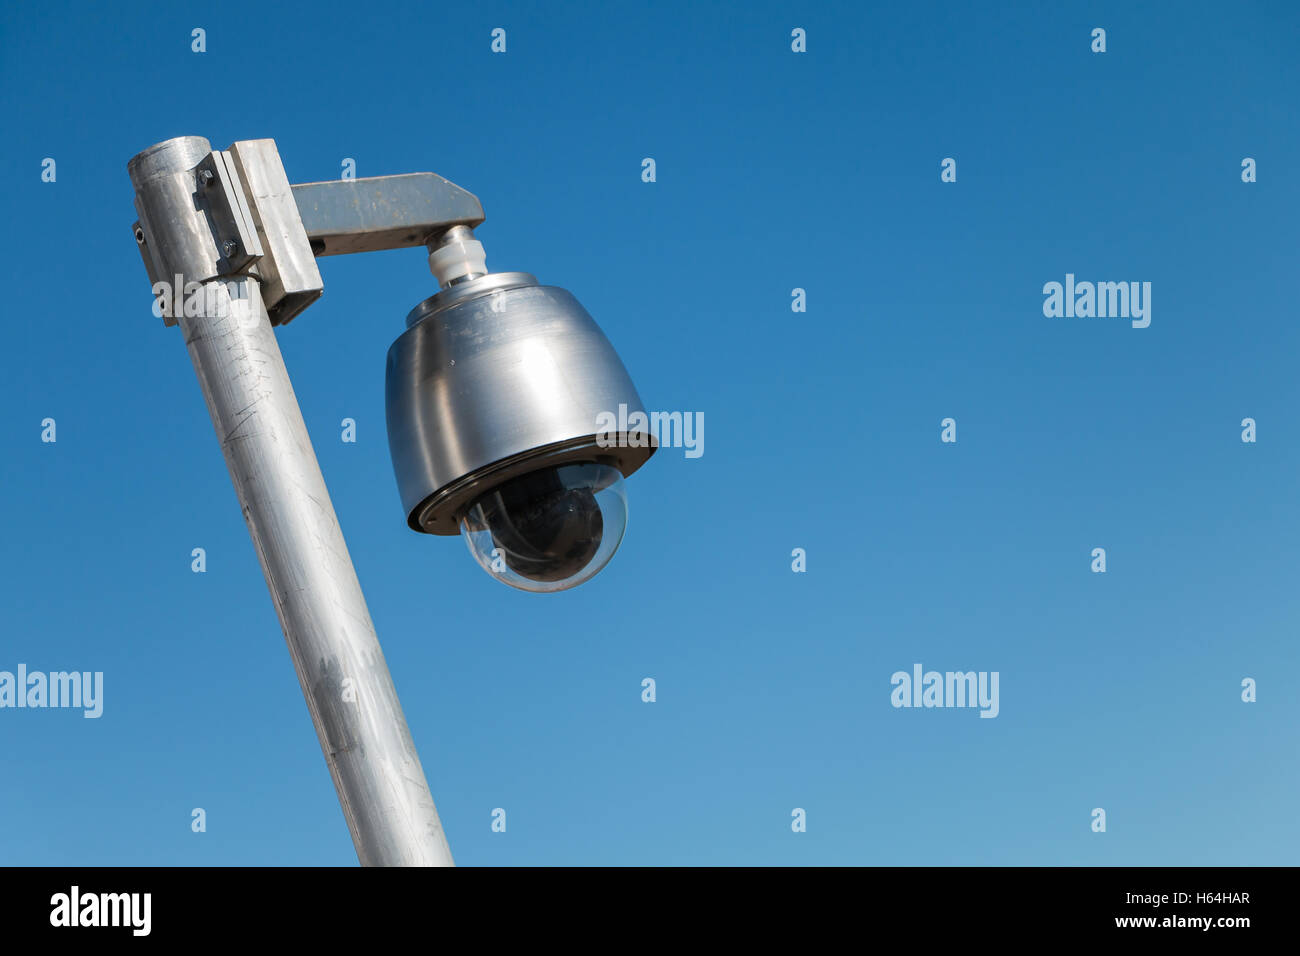 rotate safety camera on blue sky - Stock Image